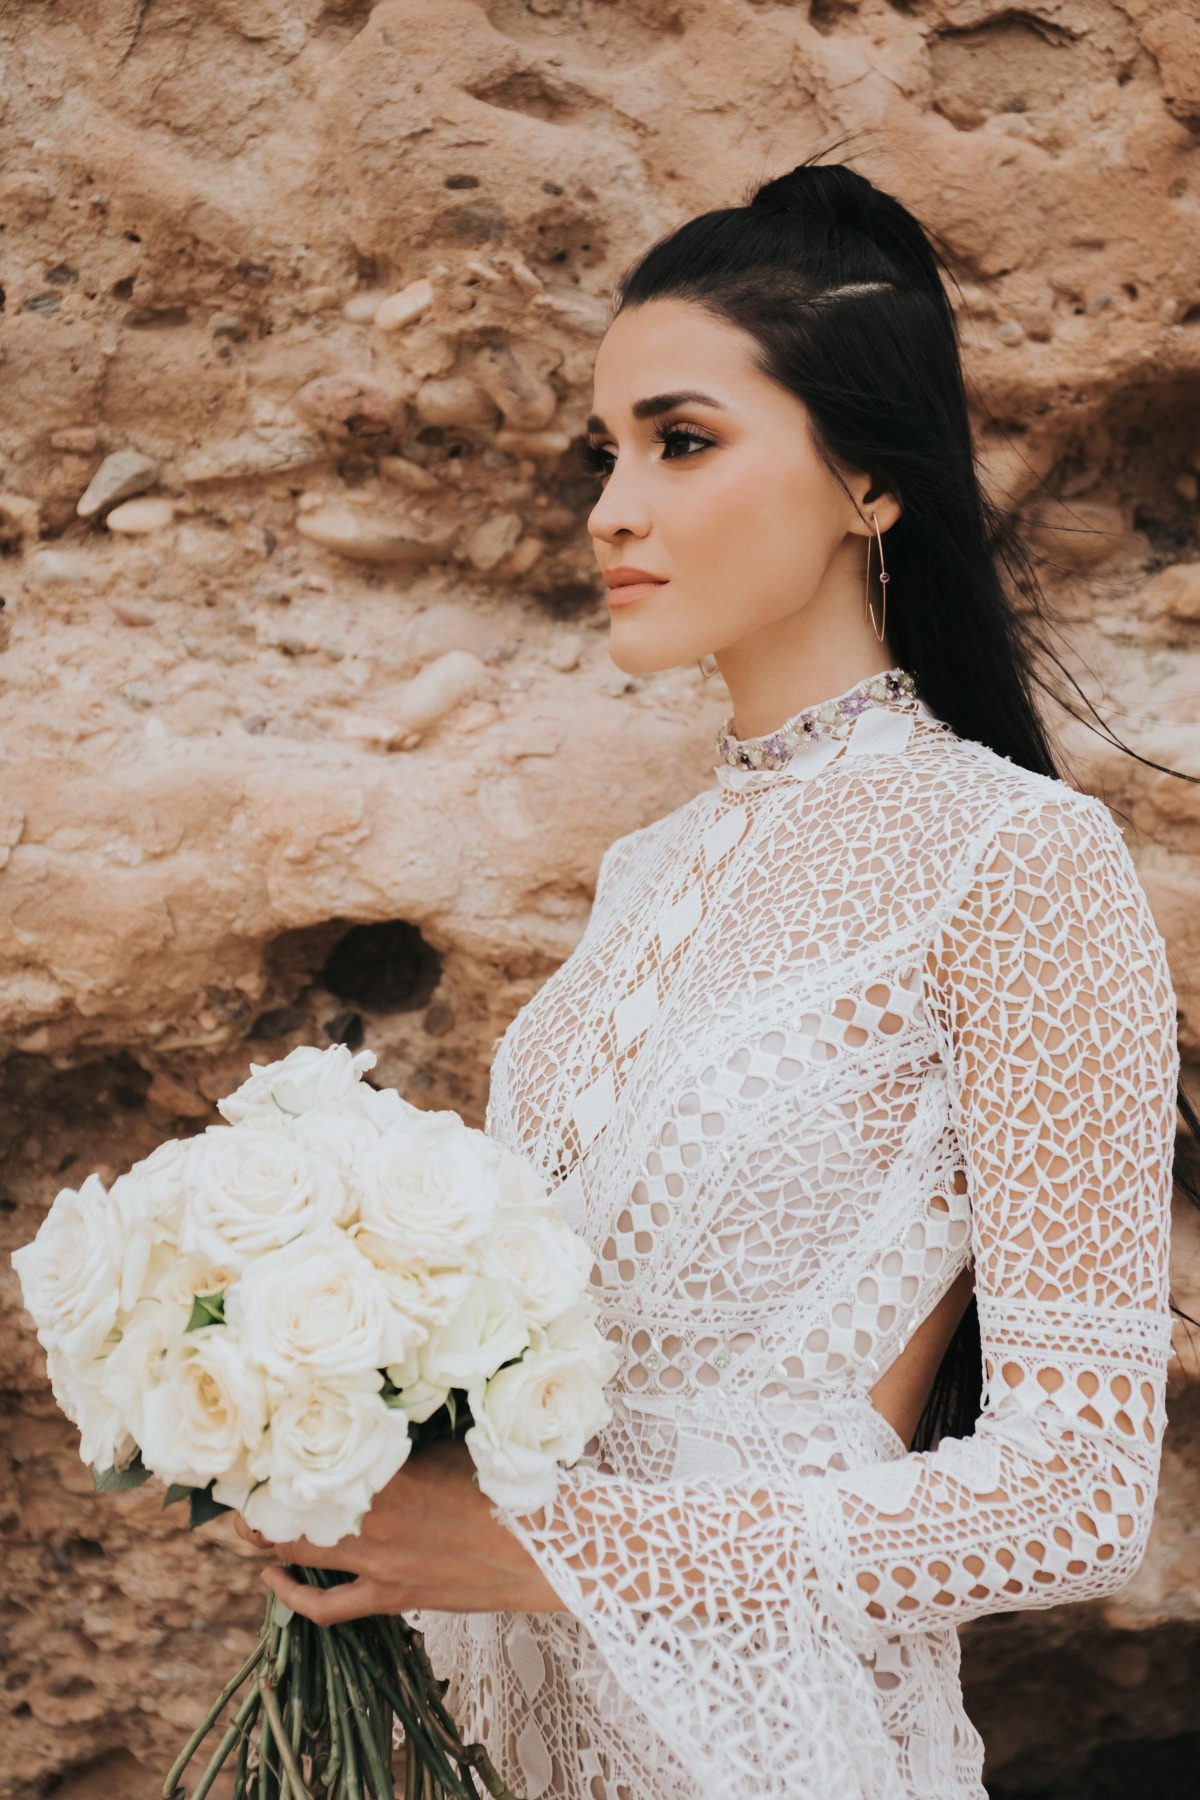 Fashionable Marrakech elopement